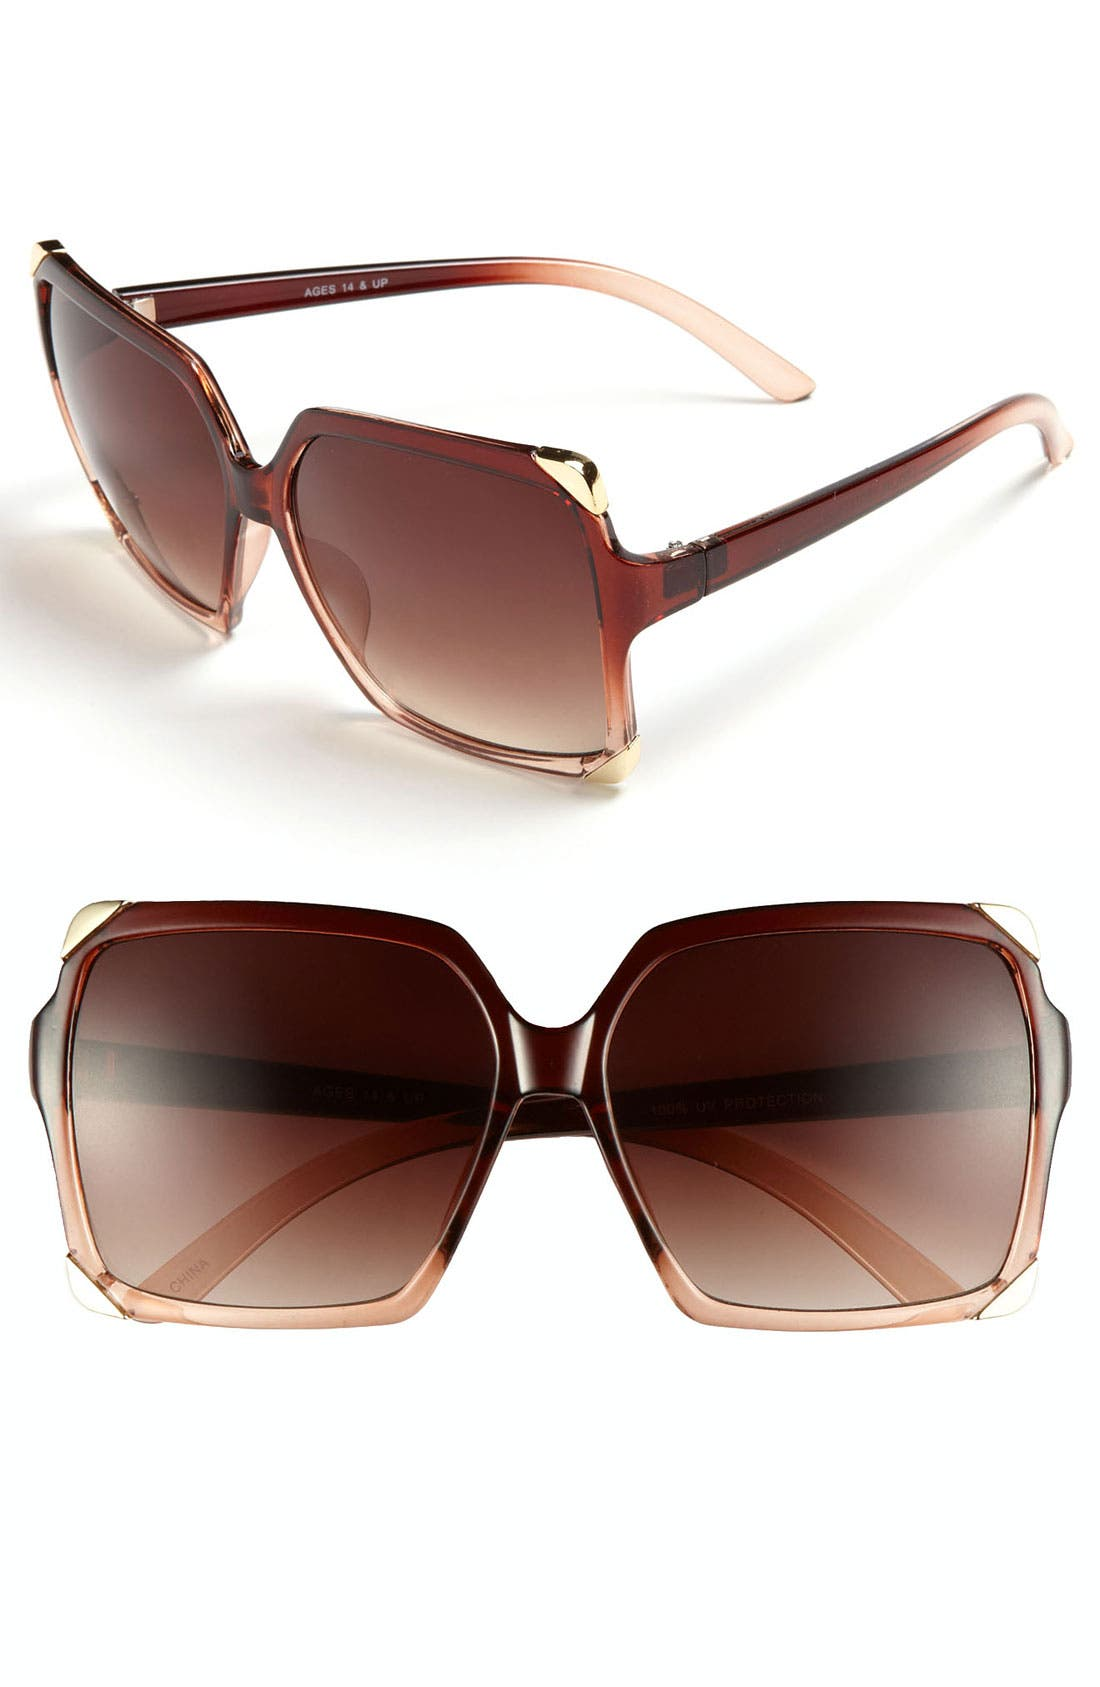 Alternate Image 1 Selected - FE NY 'St. Tropaz' Sunglasses